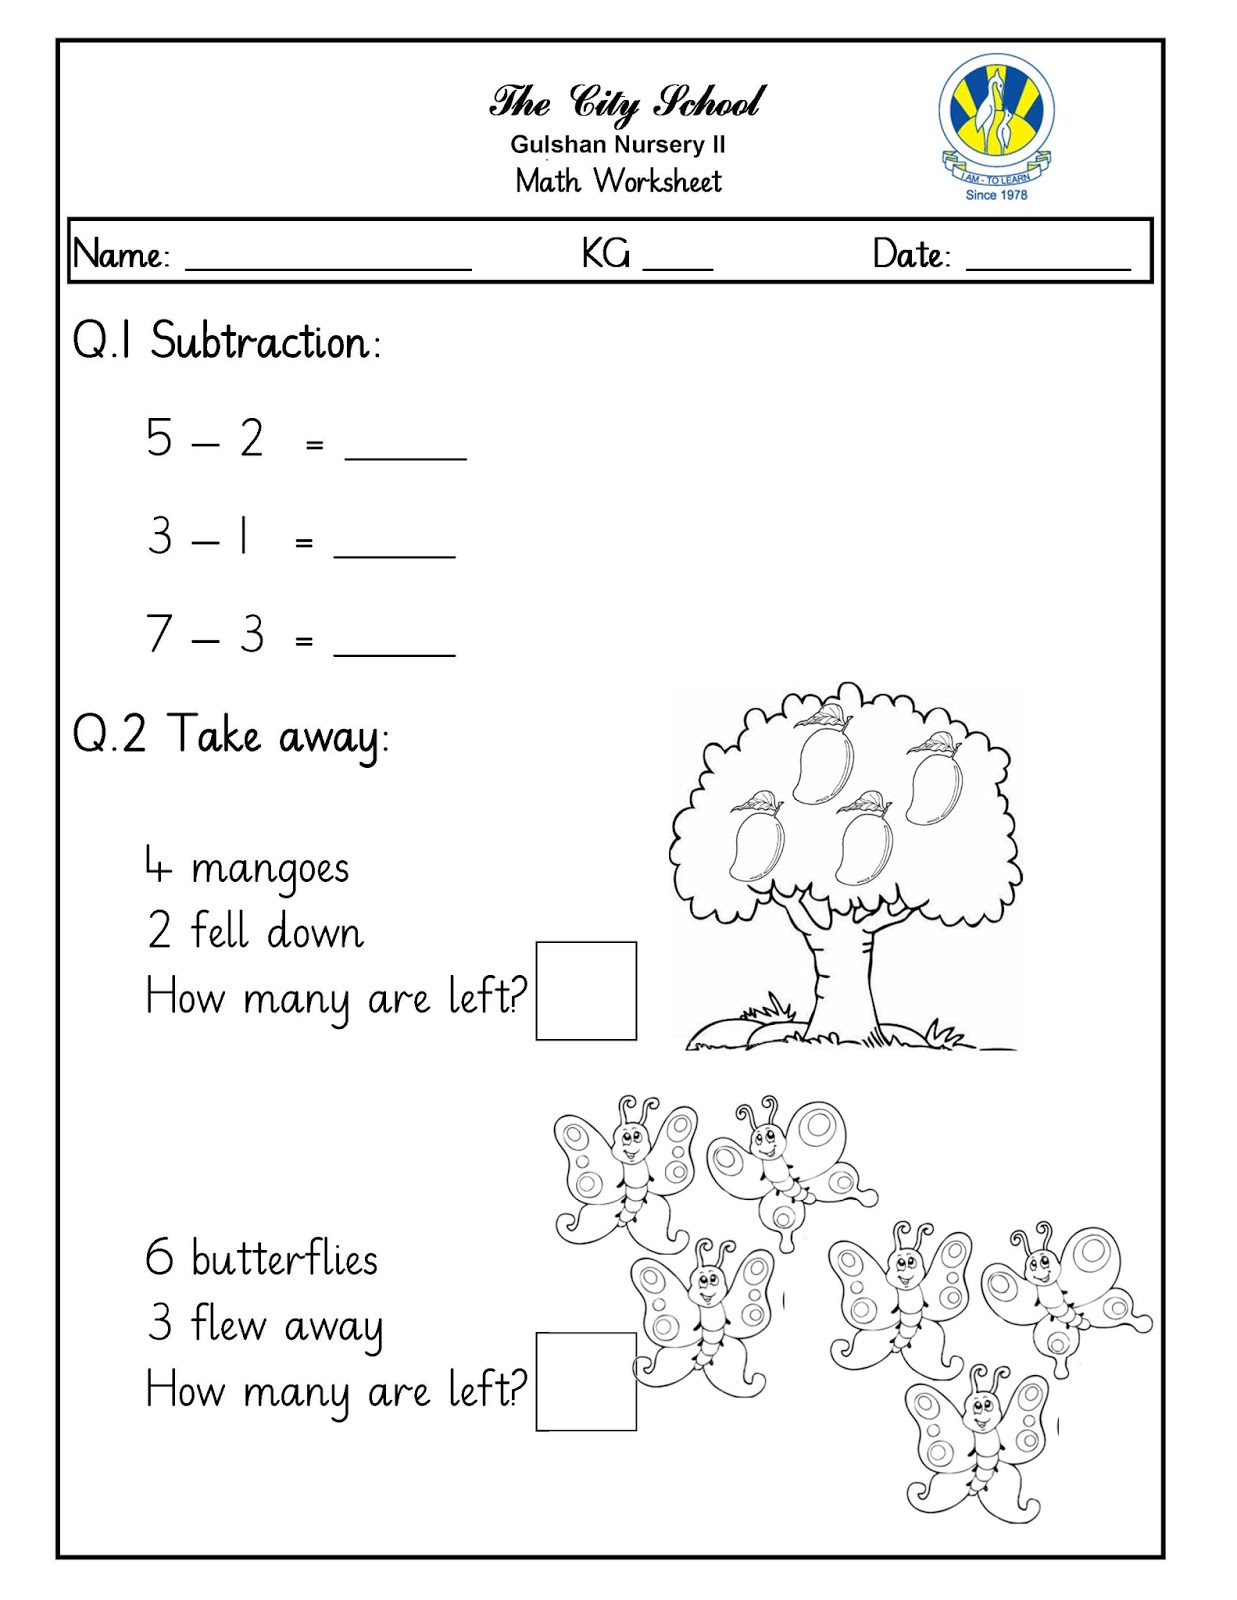 Sr Gulshan The City Nursery Ii Urdu Math Amp English Worksheets